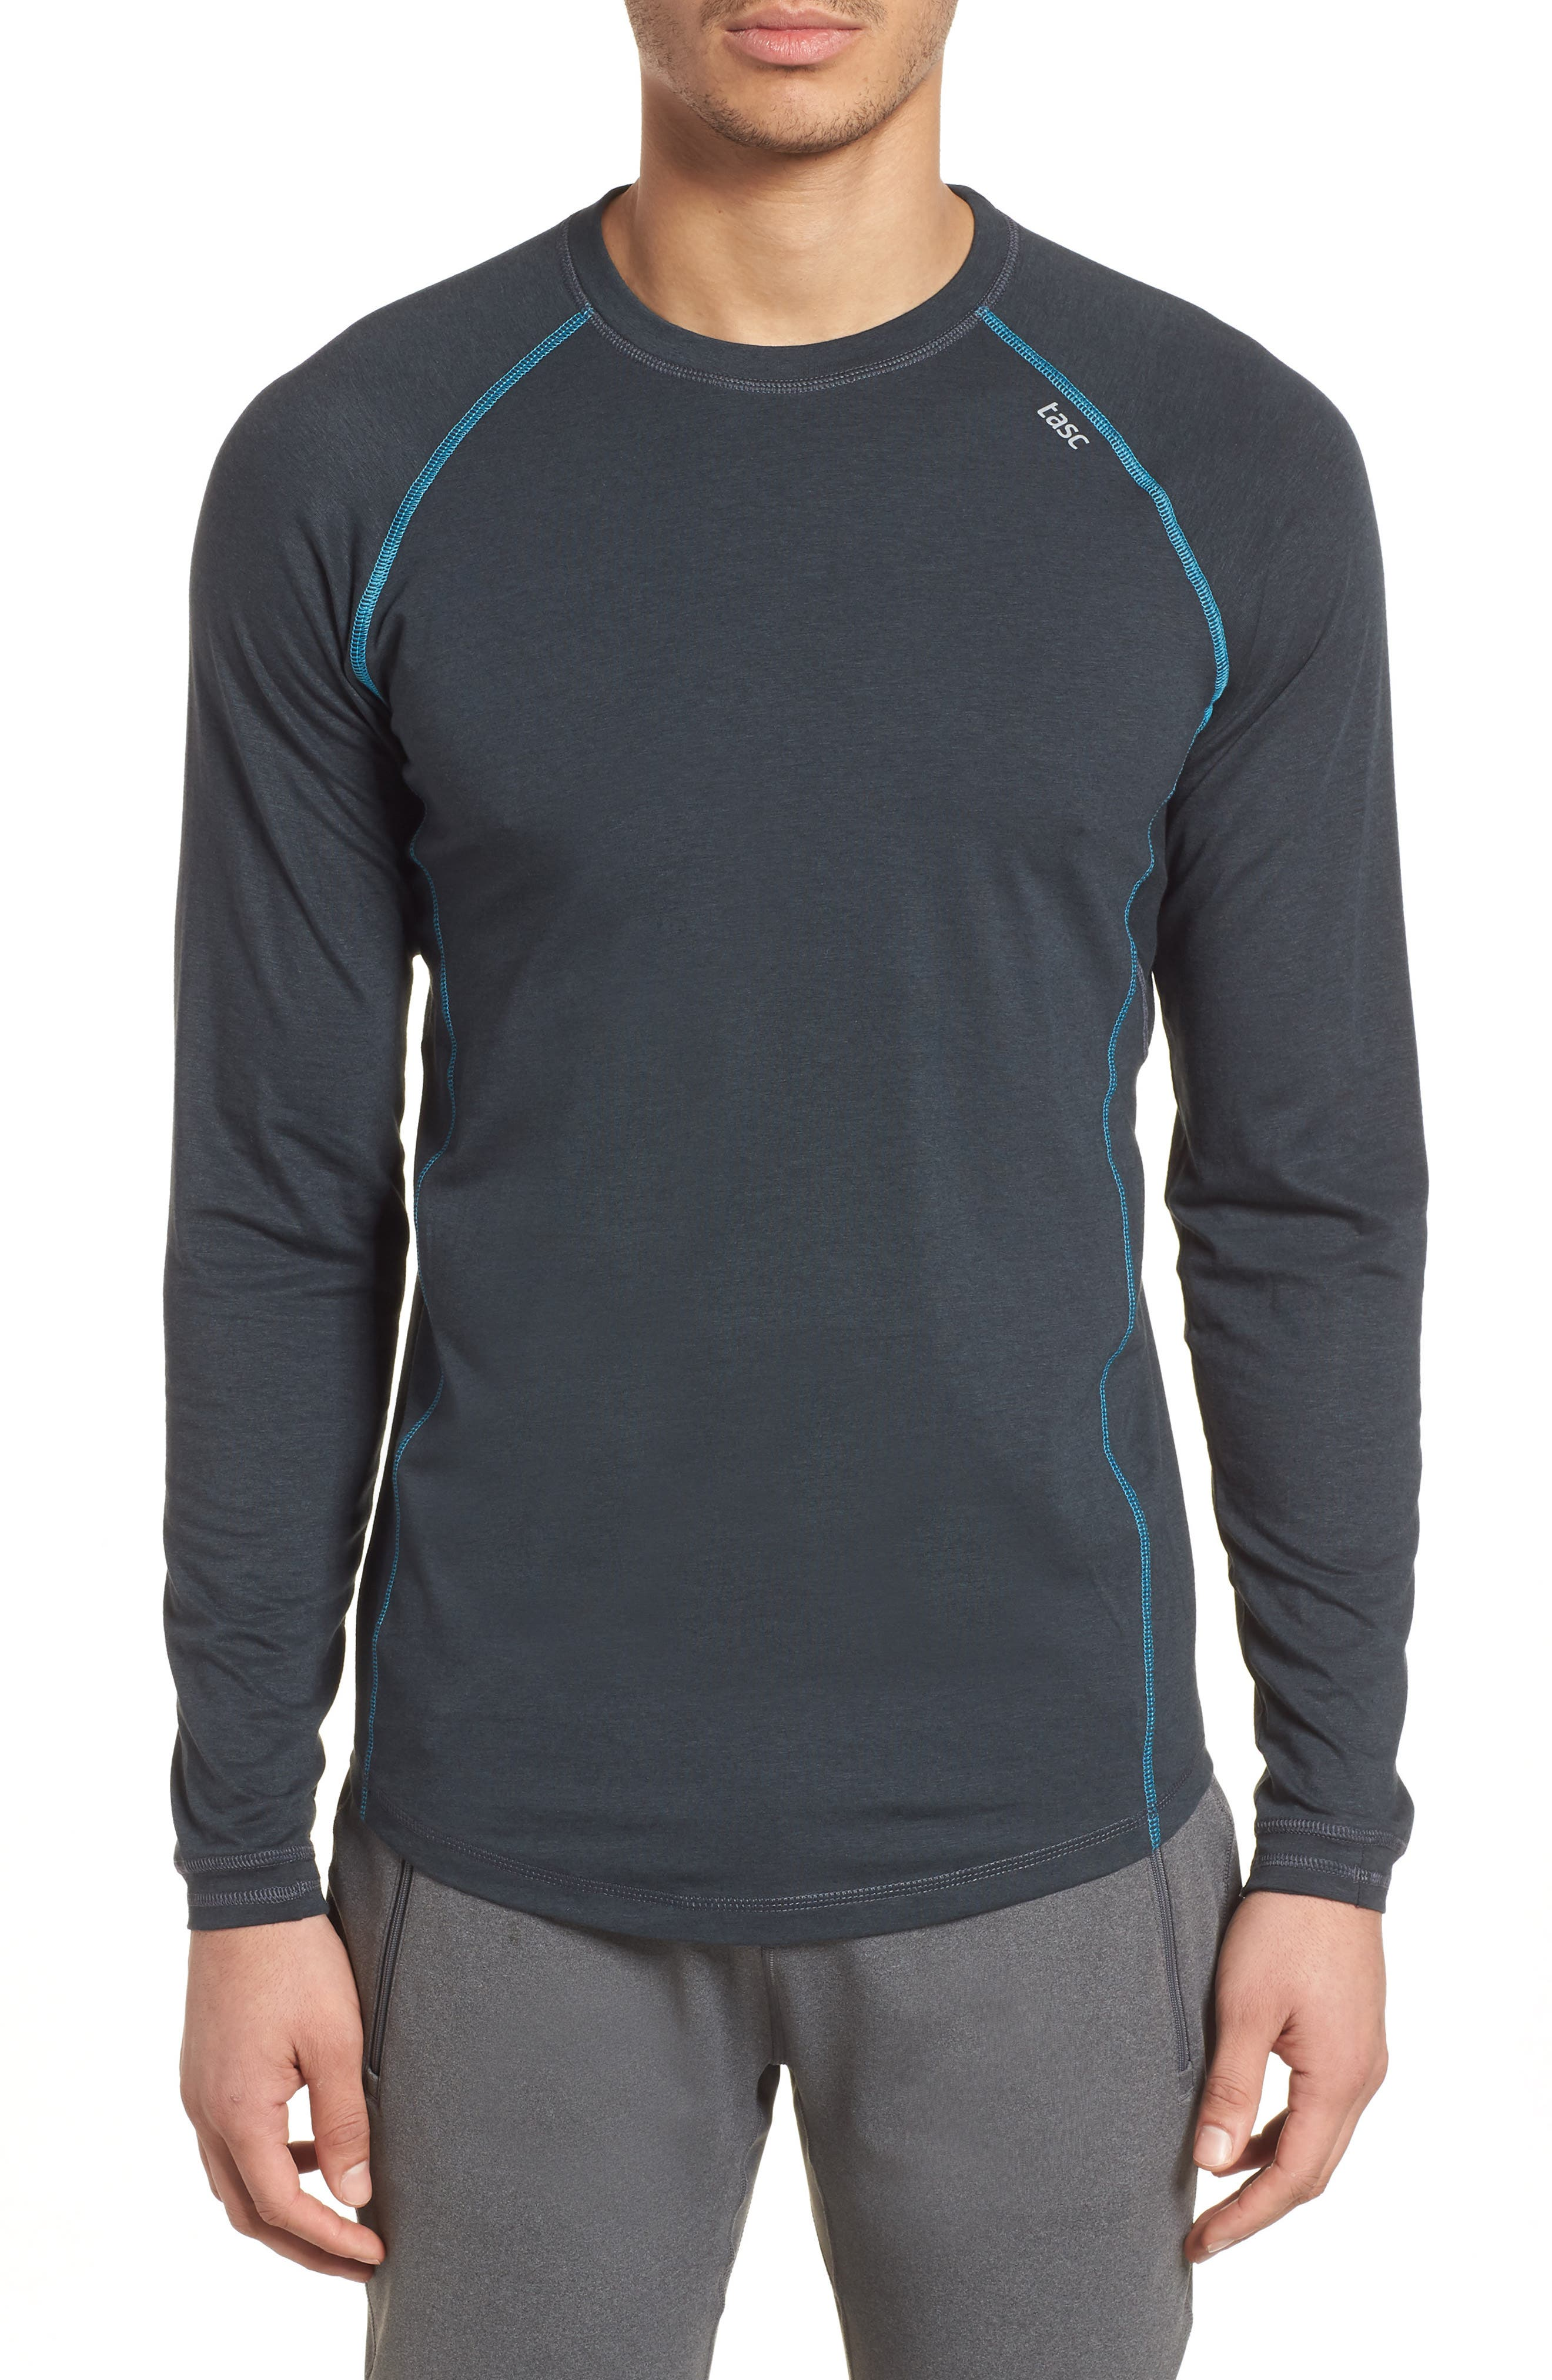 Alternate Image 1 Selected - tasc Performance Charge II Long Sleeve T-Shirt